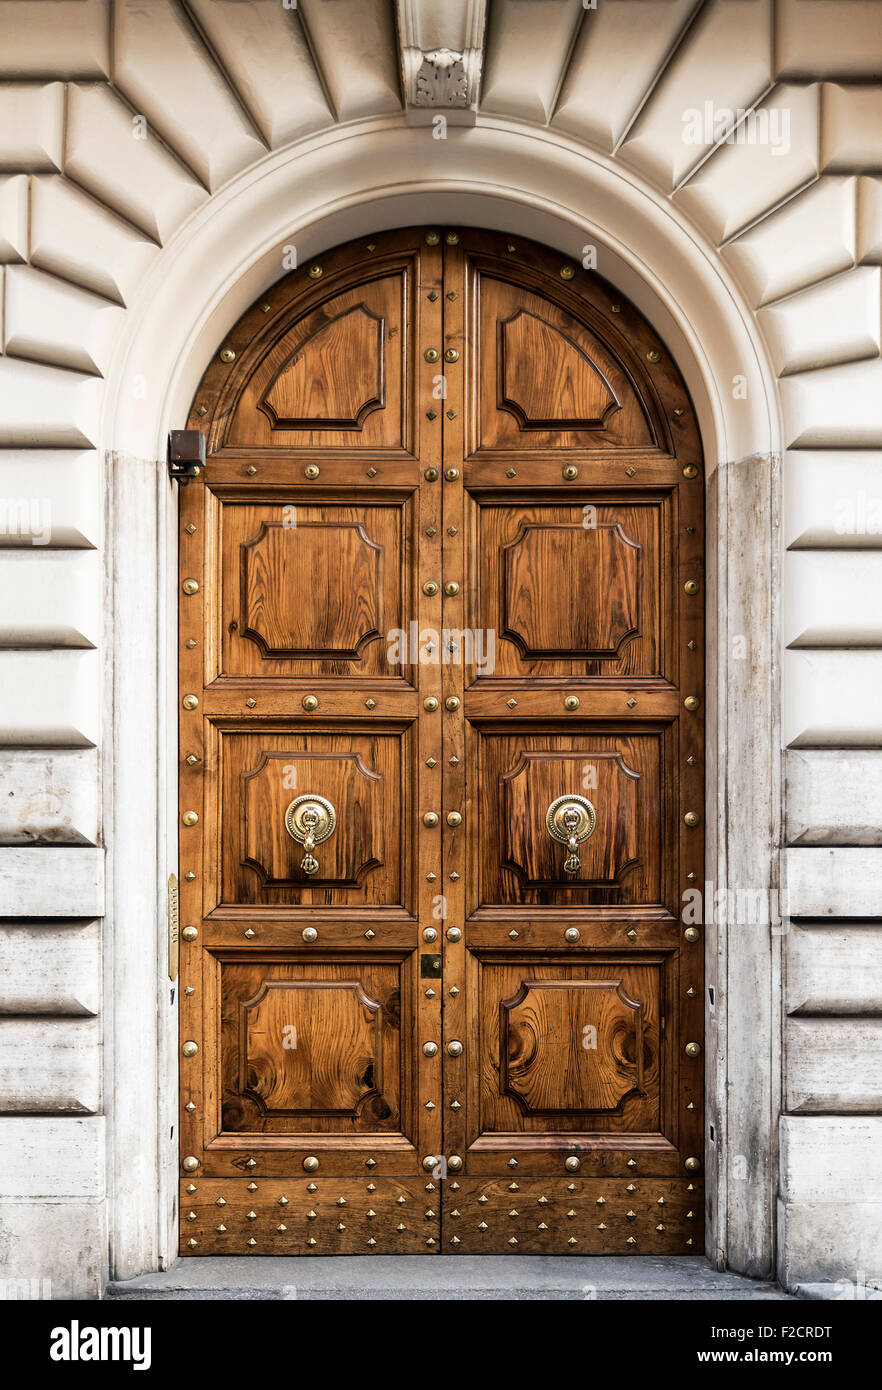 Ornate arched double door, Rome, Italy - Stock Image